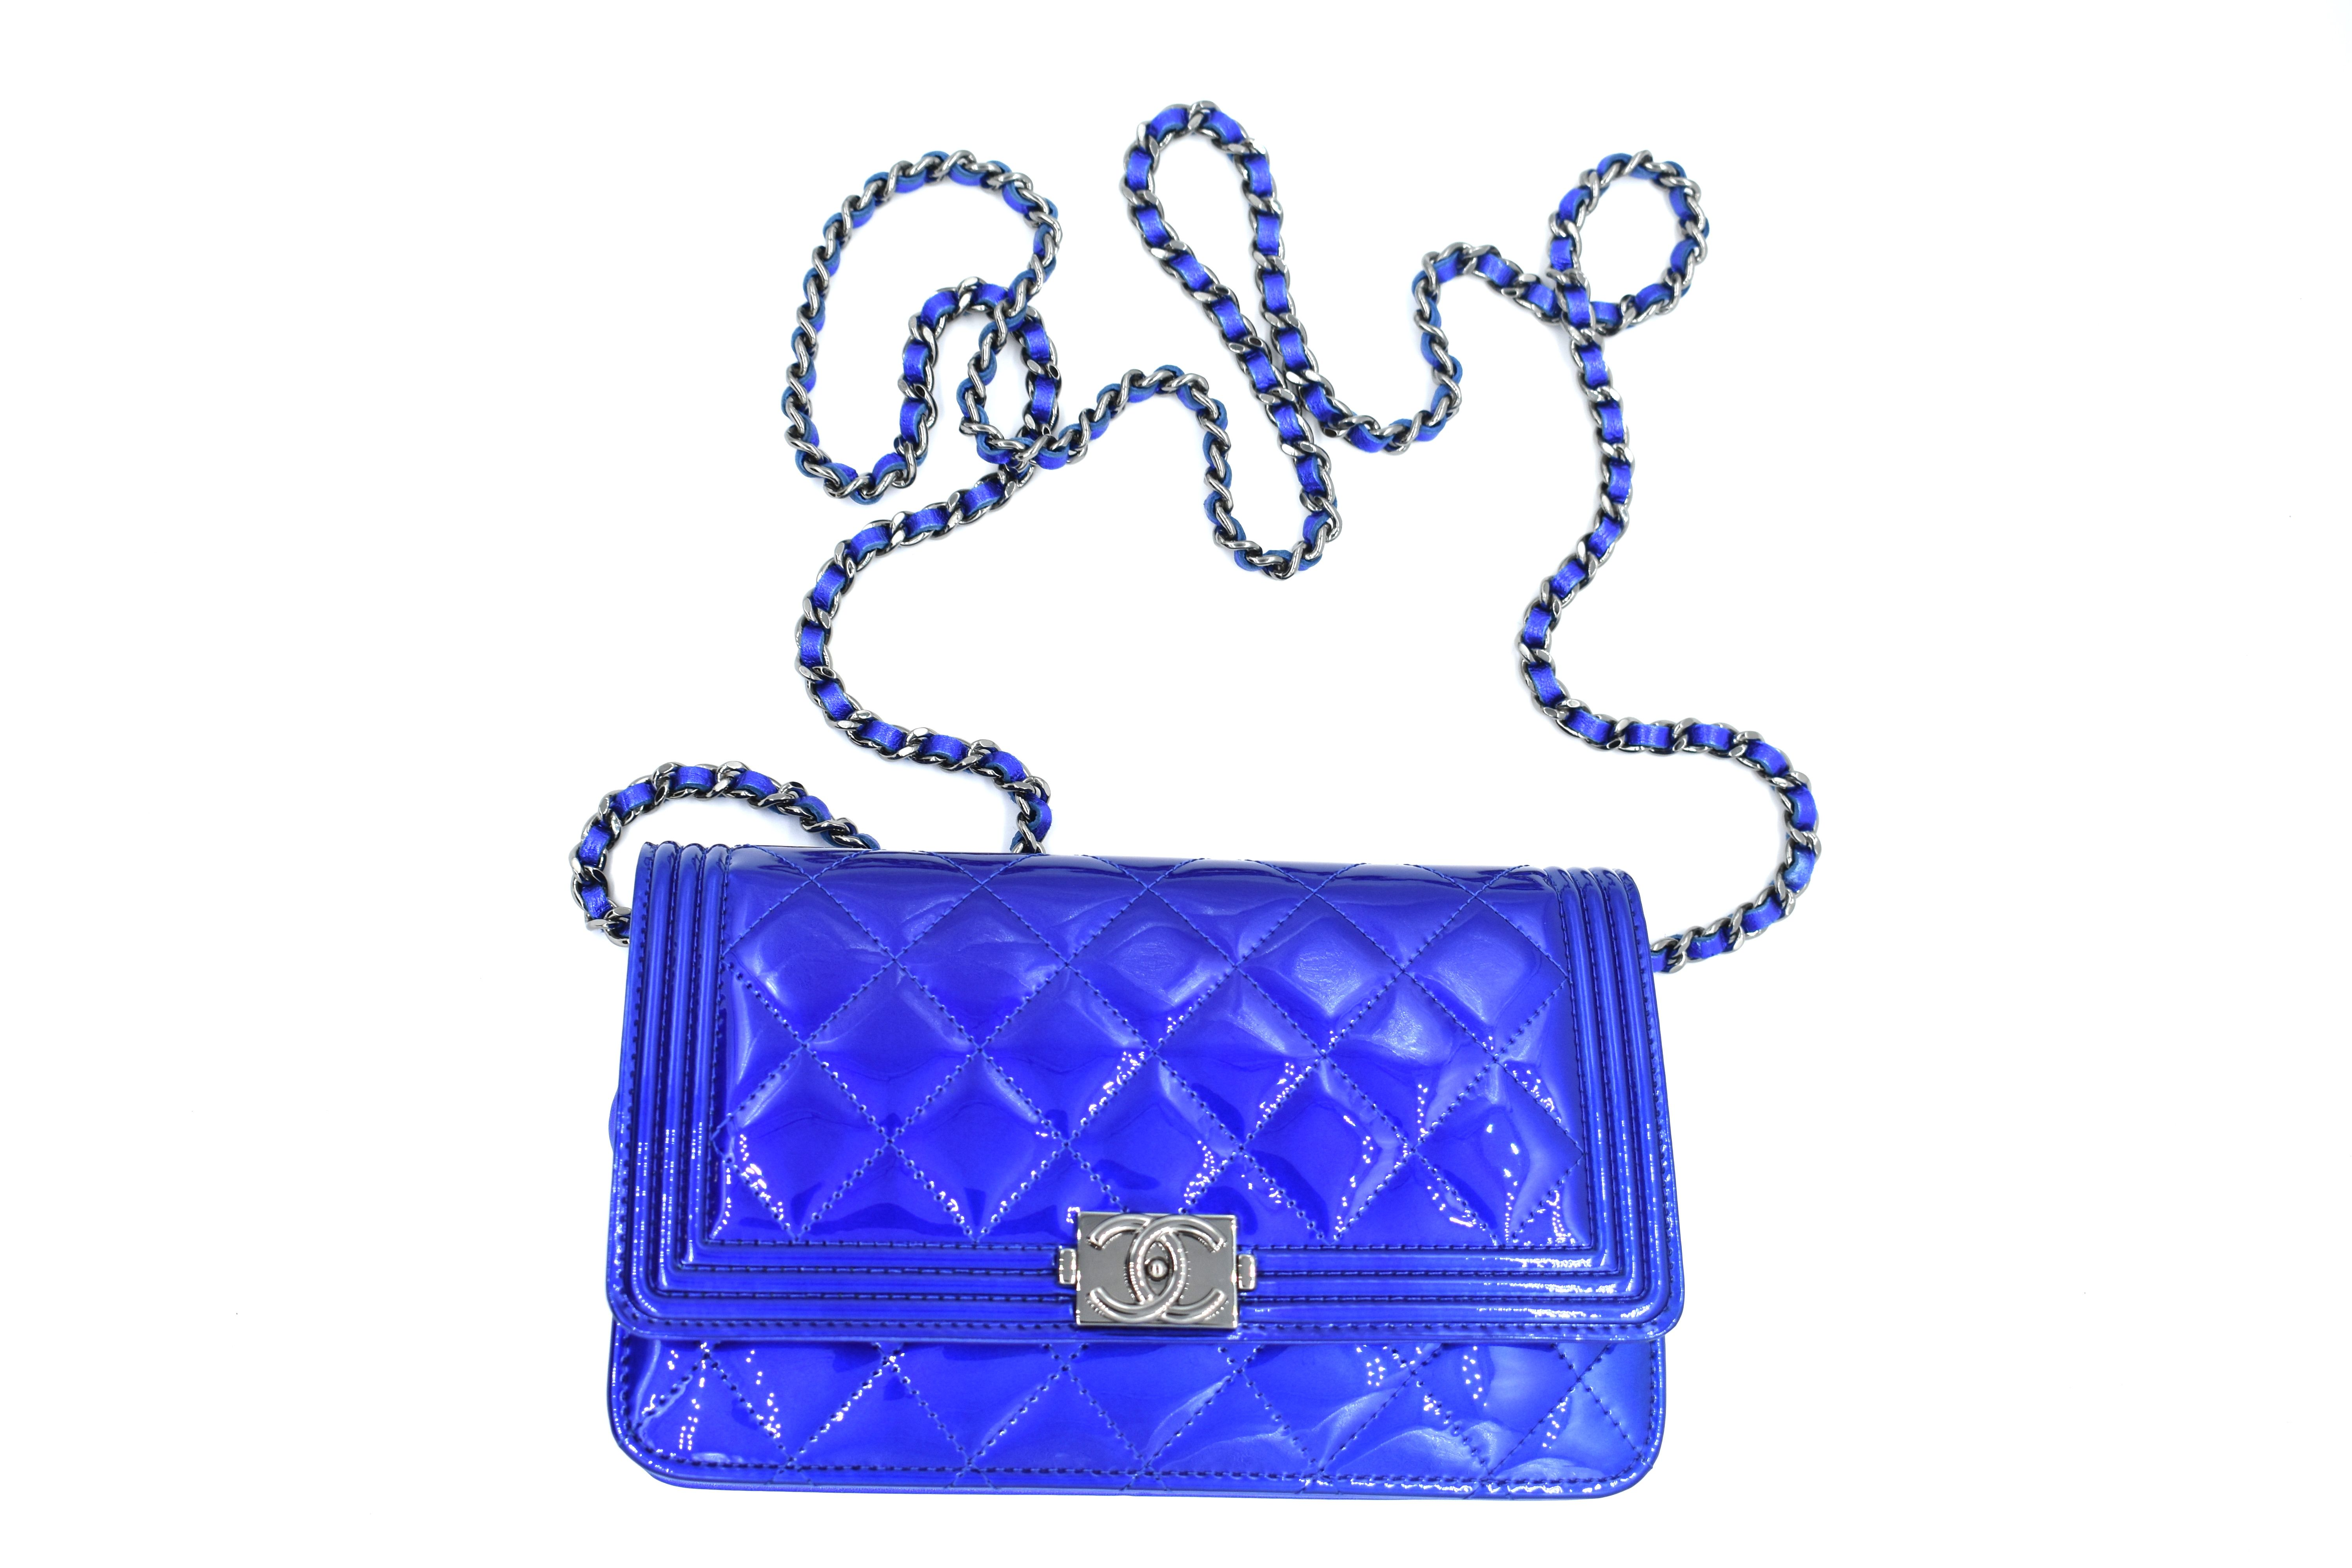 8ecdba64b097 All the Chanel, all the time. Rent this patent leather, electric blue Chanel  flap bag from DesignerShare.